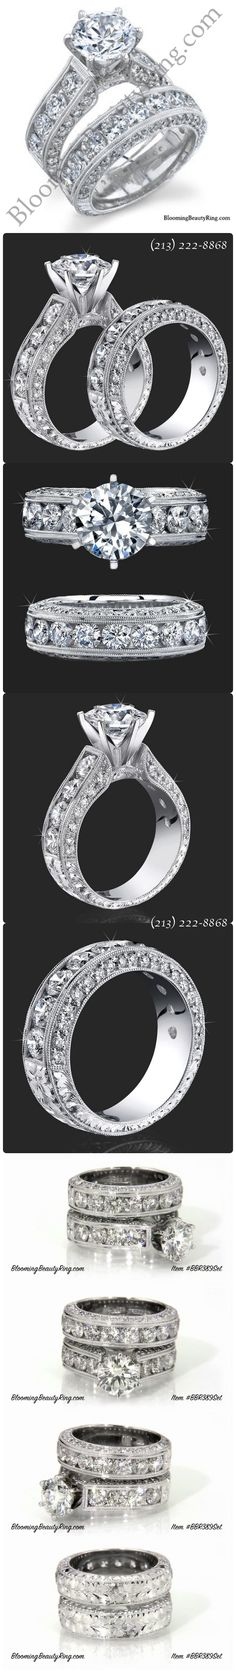 "(Click on the picture to see this ring in HD video on our website)    This hand-made engagement ring set is almost beyond description!    Each ring has over 2 carats of top quality ""accent diamonds"" alone!  Pictures show a 2 carat center stone making the rings = 6.10 ctw.    (Queen Elizabeth herself would be jealous!!)  (213) 222-8868  BloomingBeautyRing.com"